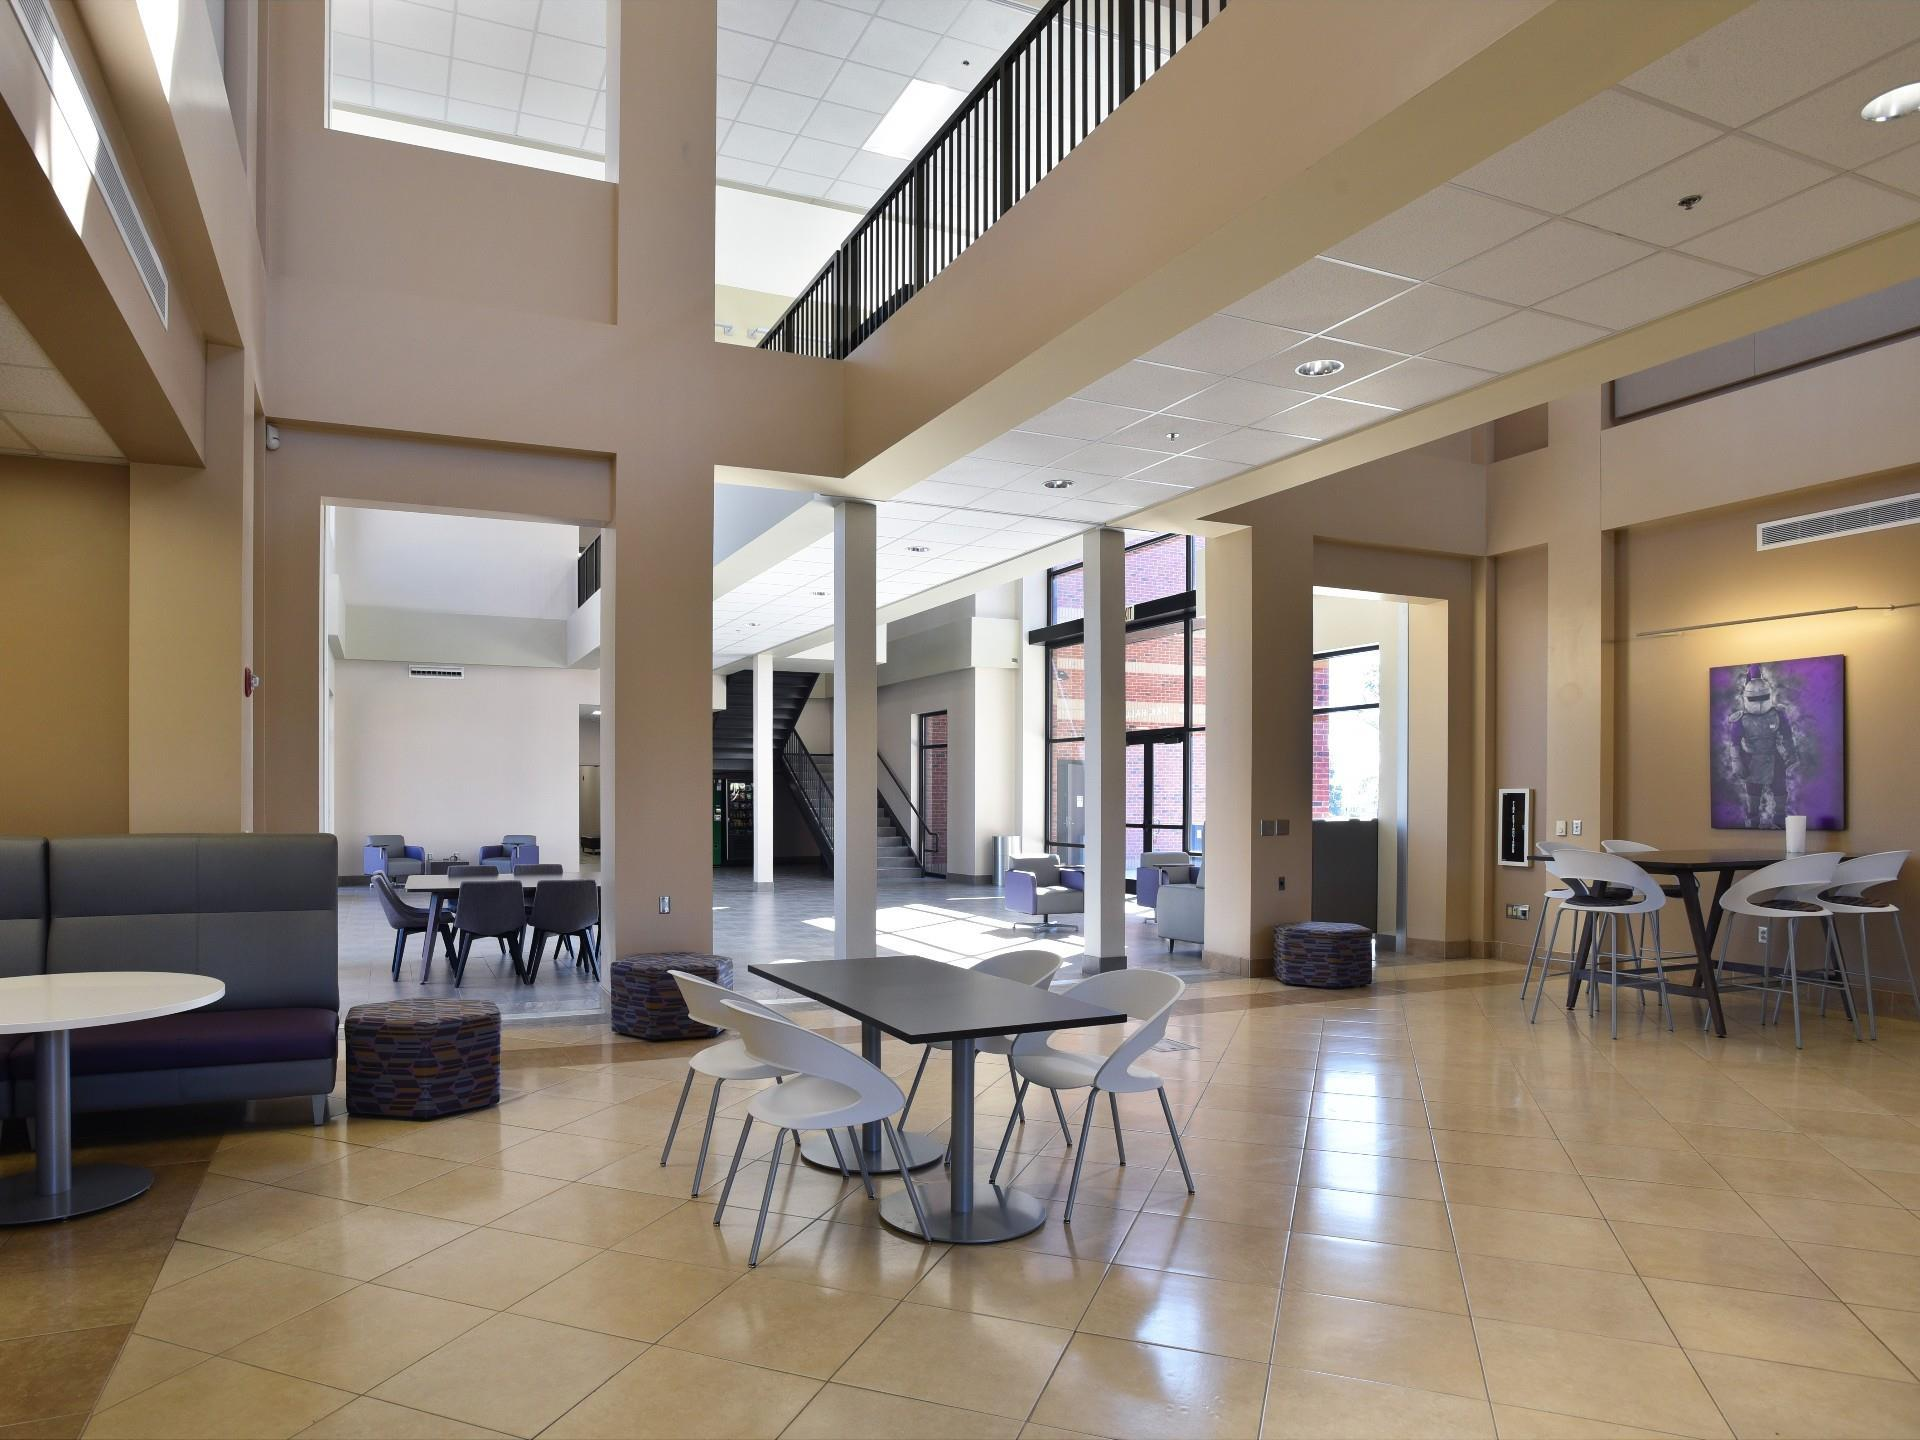 Interior of lobby/gathering space with tables and chairs and open concept with natural light.